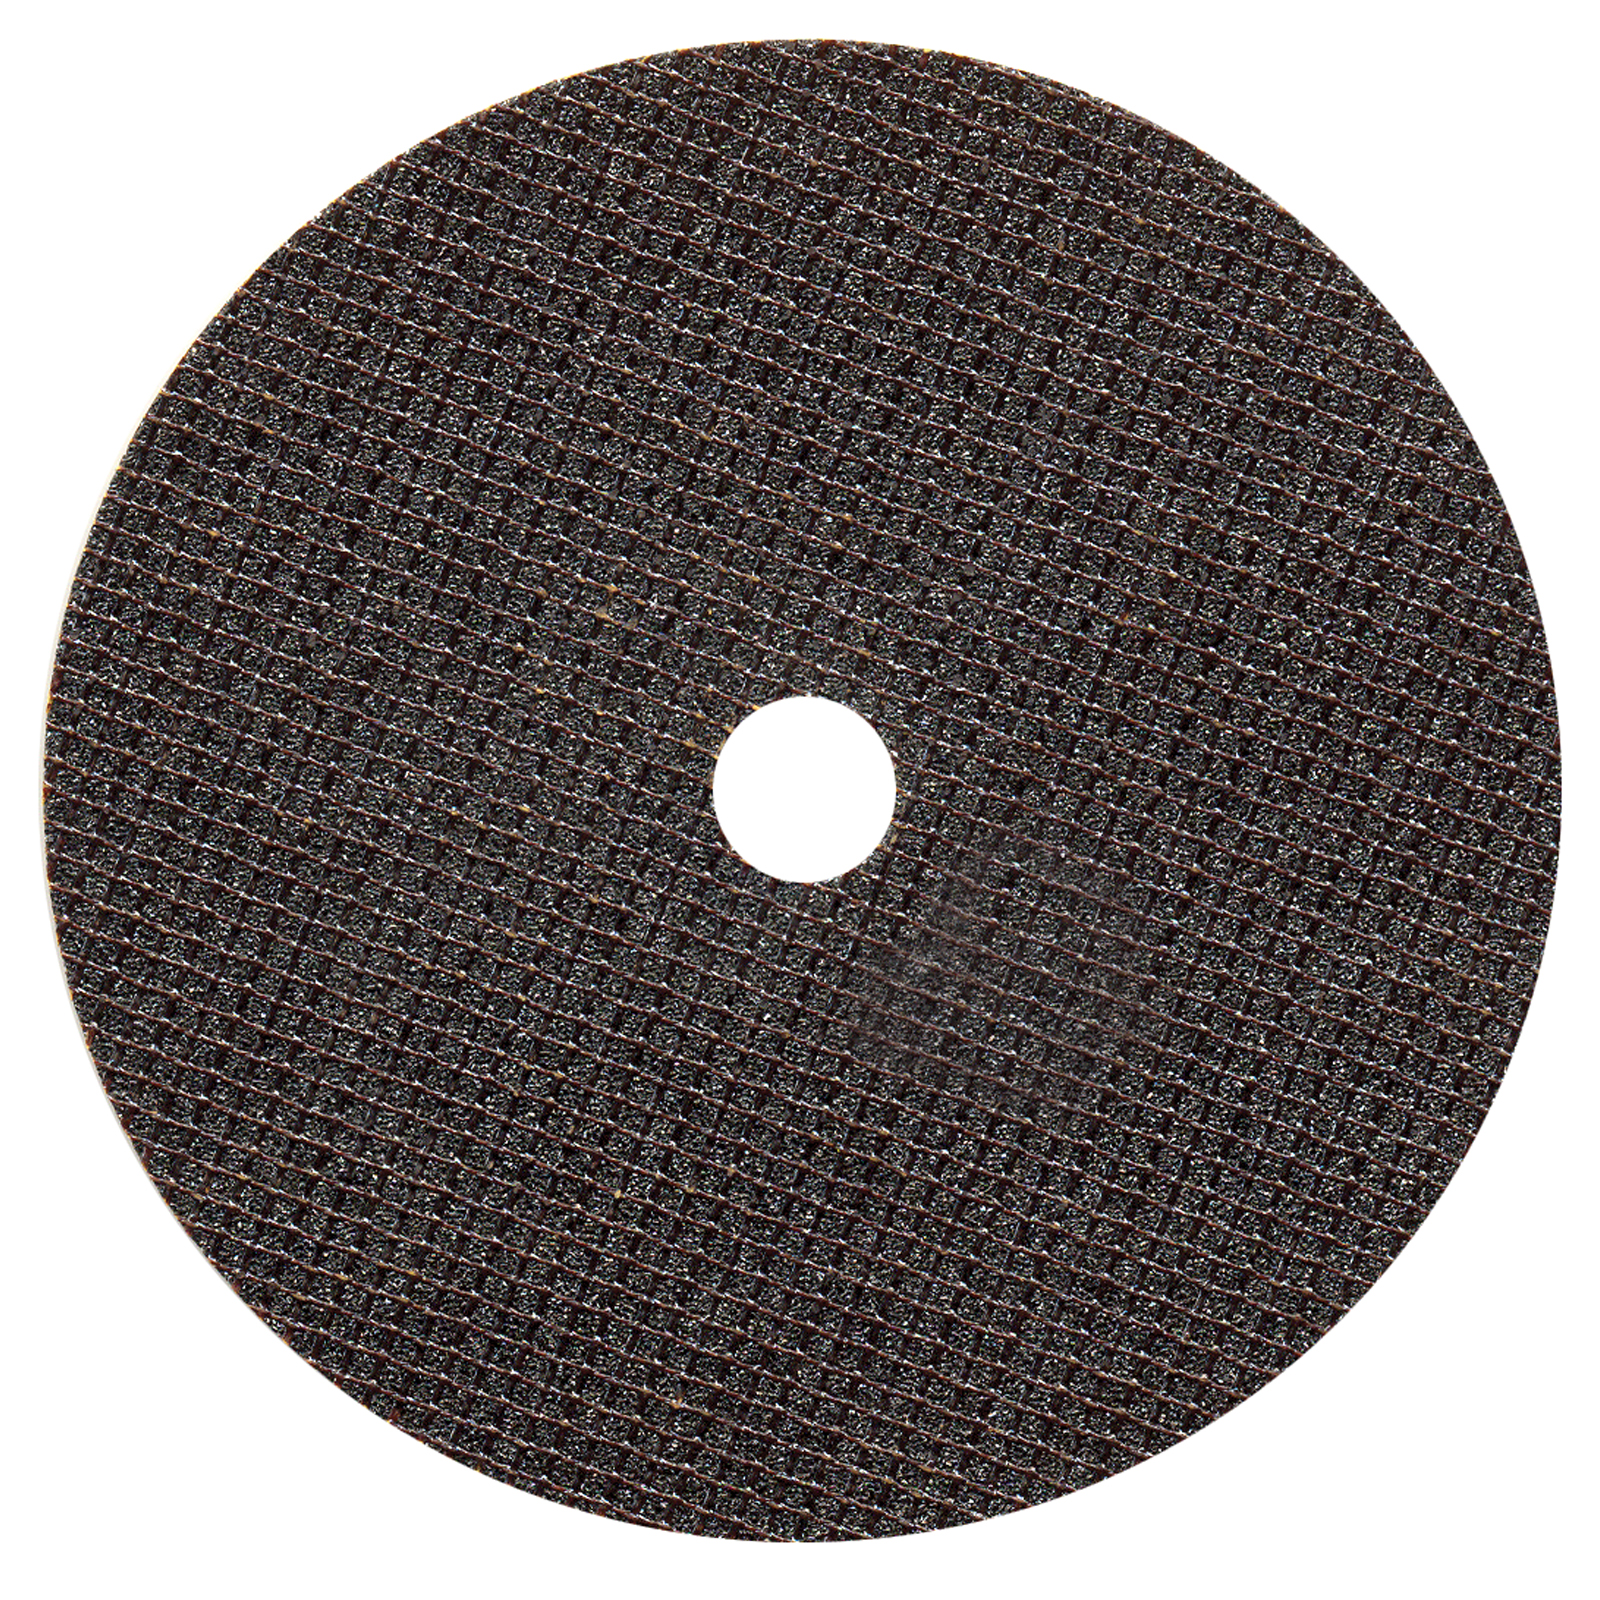 Abrasive cut off disk non ferrous 3 1 4 dia 10mm hole for 10 sanding disc for table saw